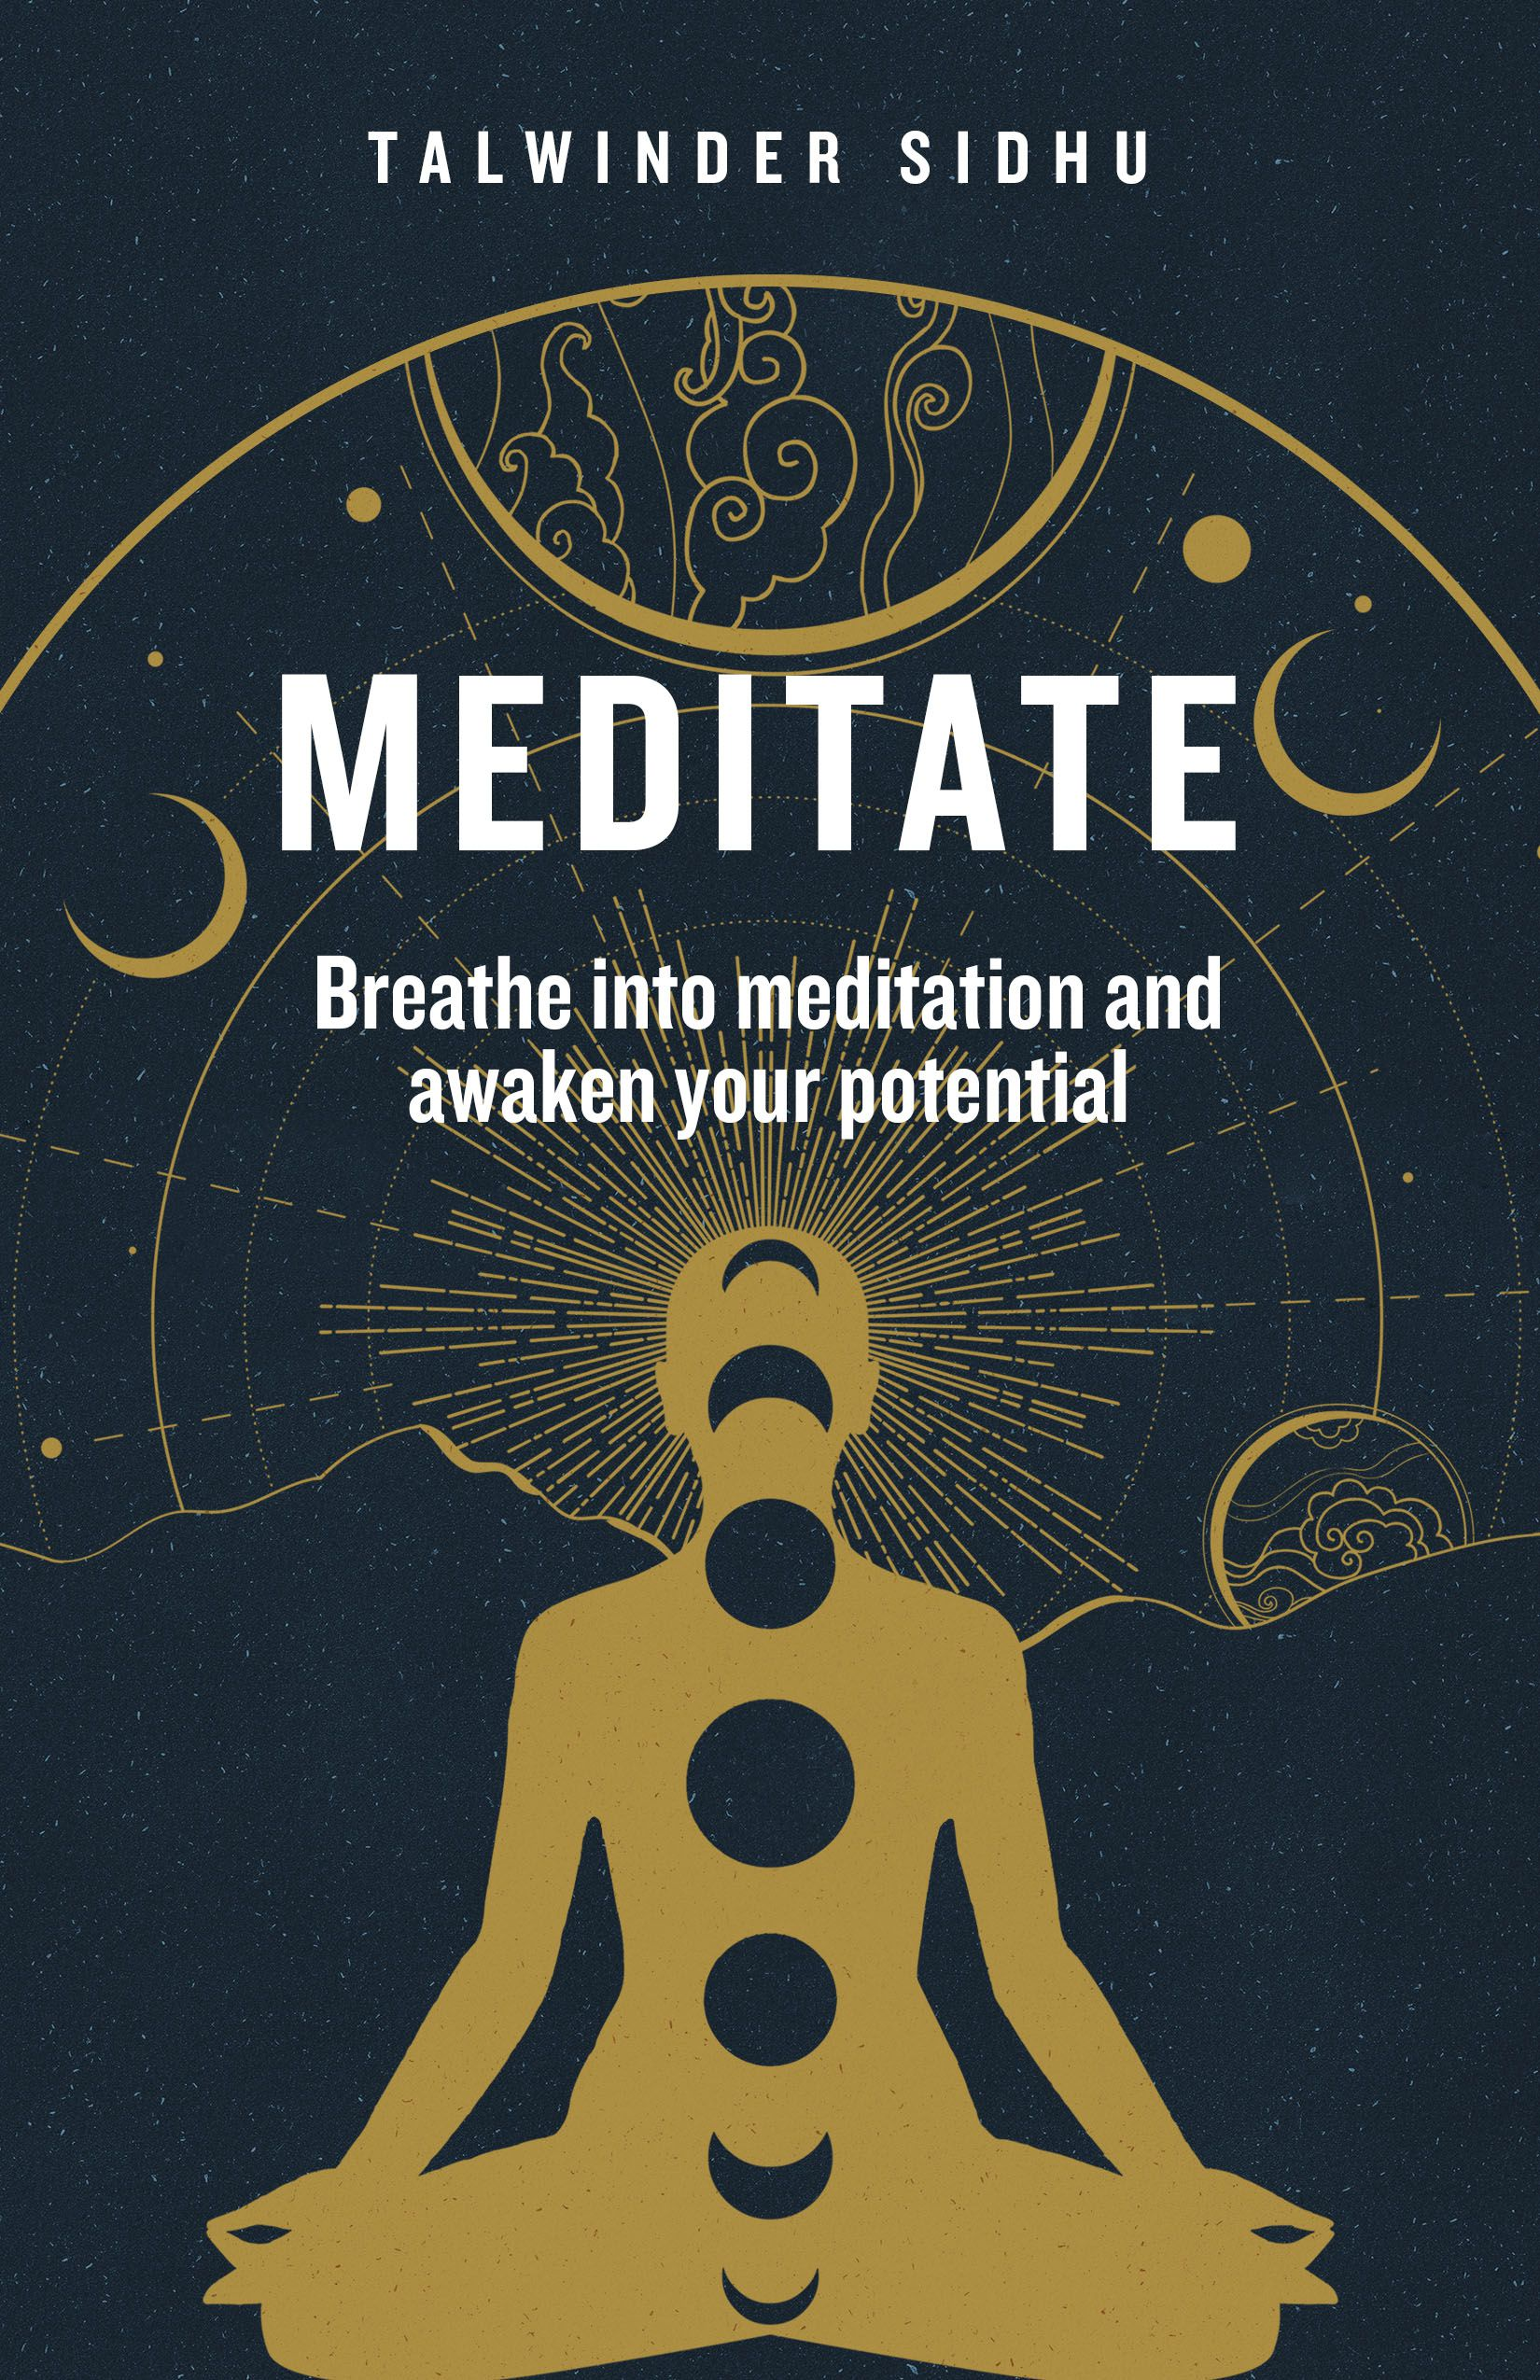 Front cover of the book Meditate: Breathe into Meditation and Awaken Your Potential - Available on Amazon